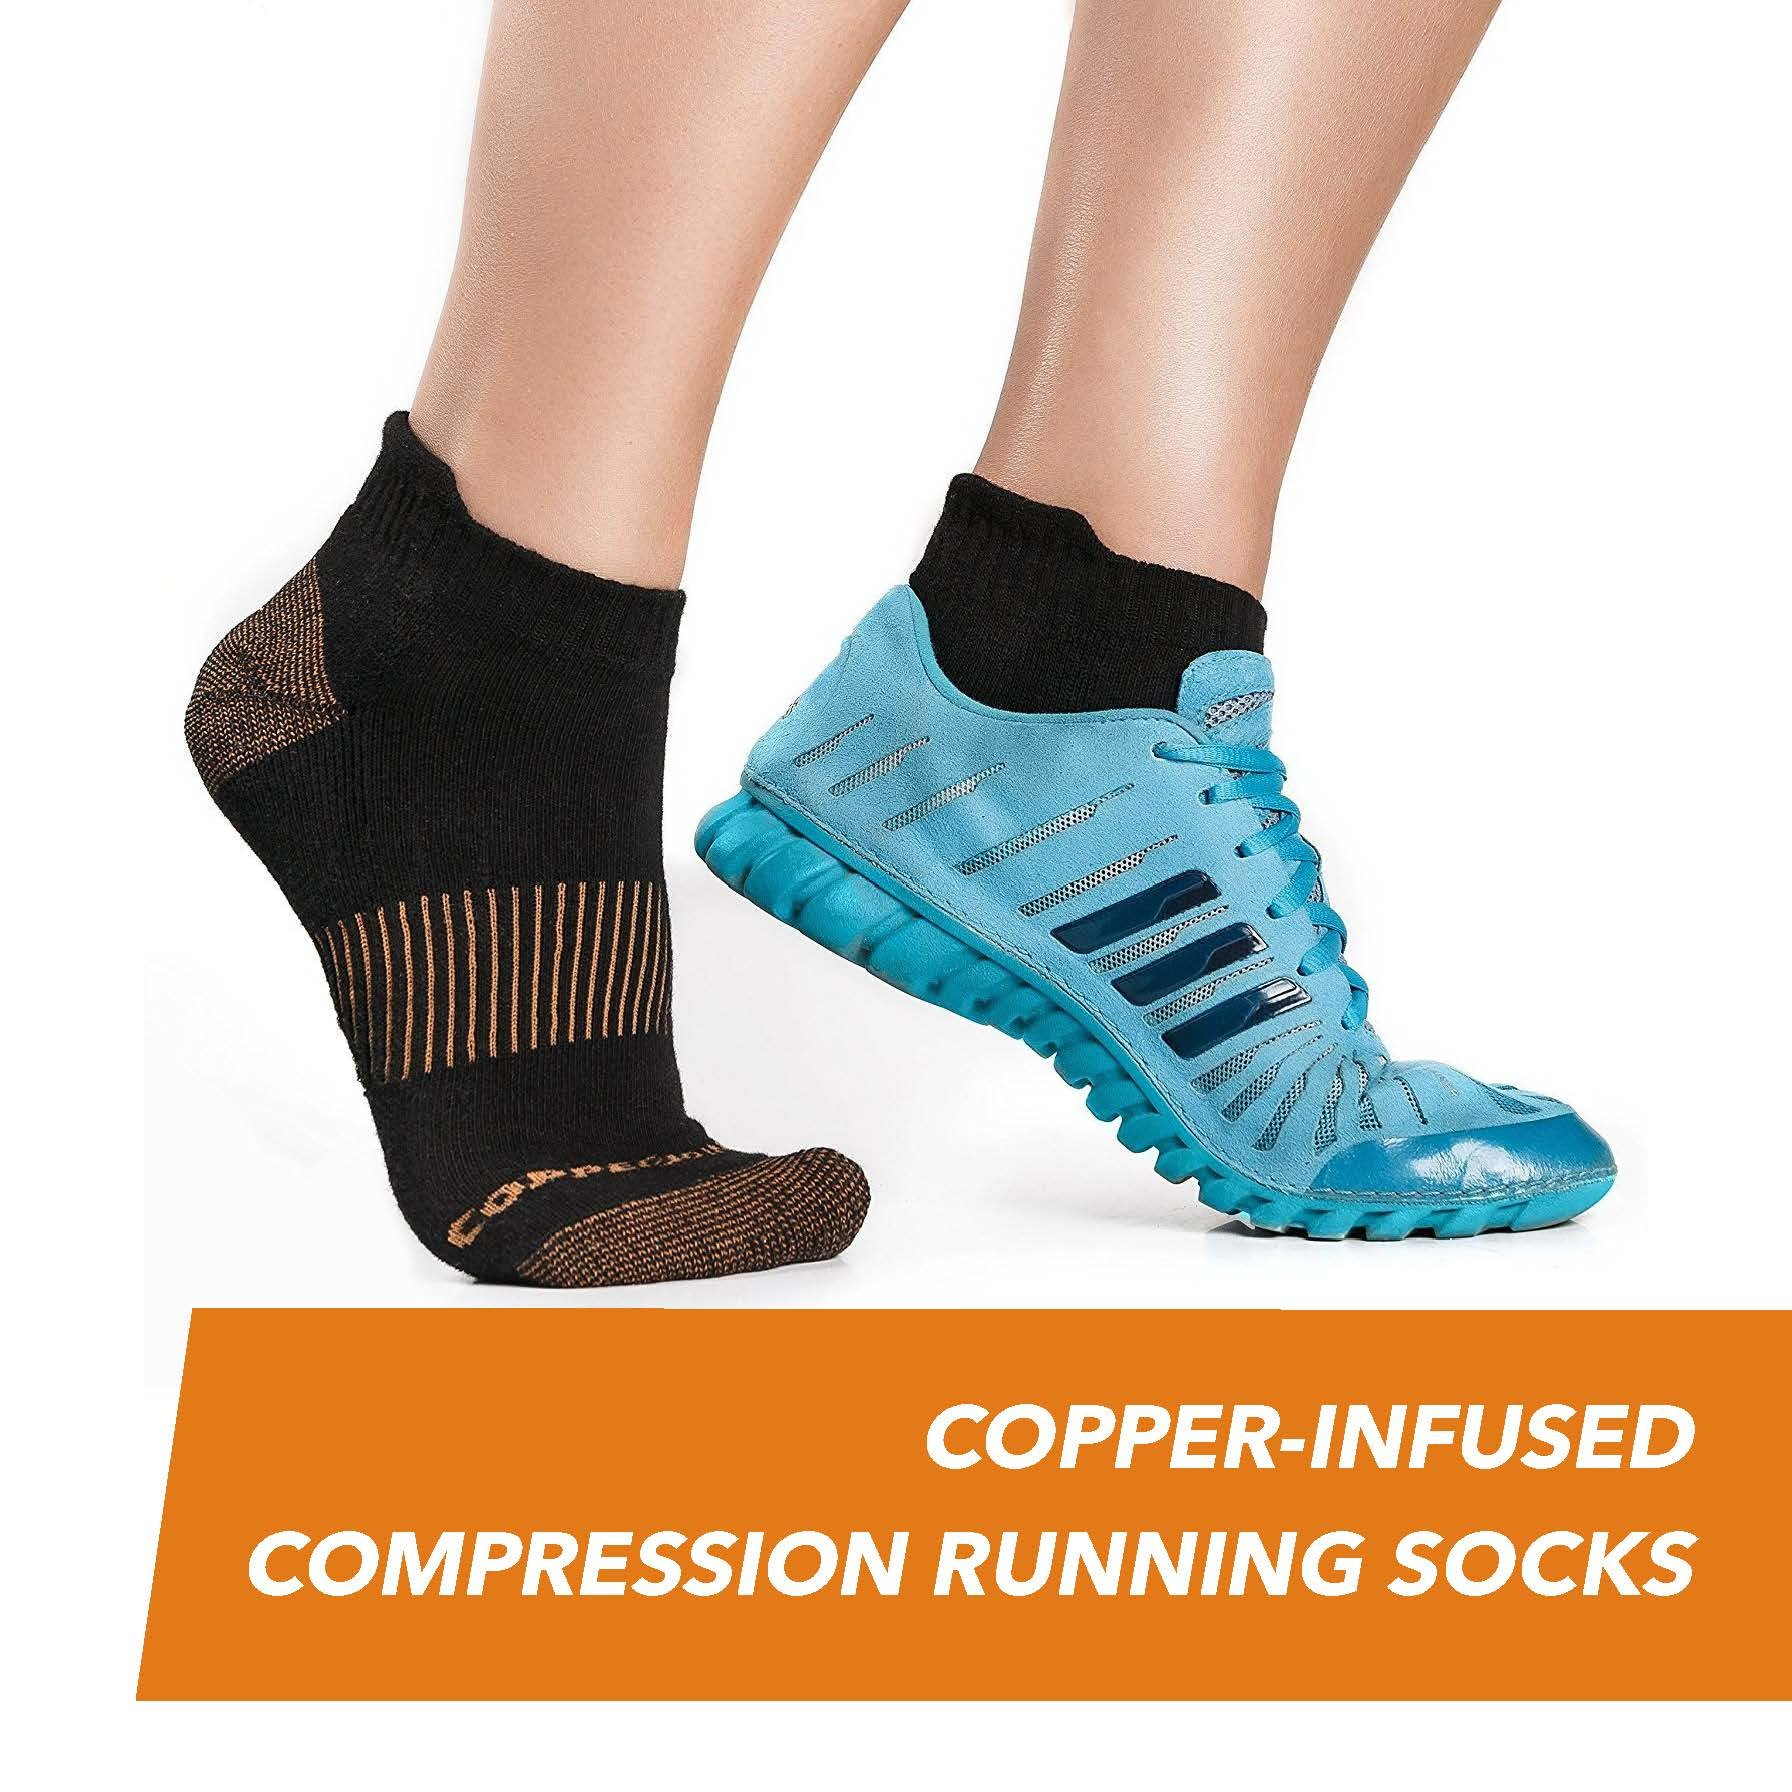 CopperJoint Copper-Infused Short Compression Running Socks, Pair (Small/Medium)